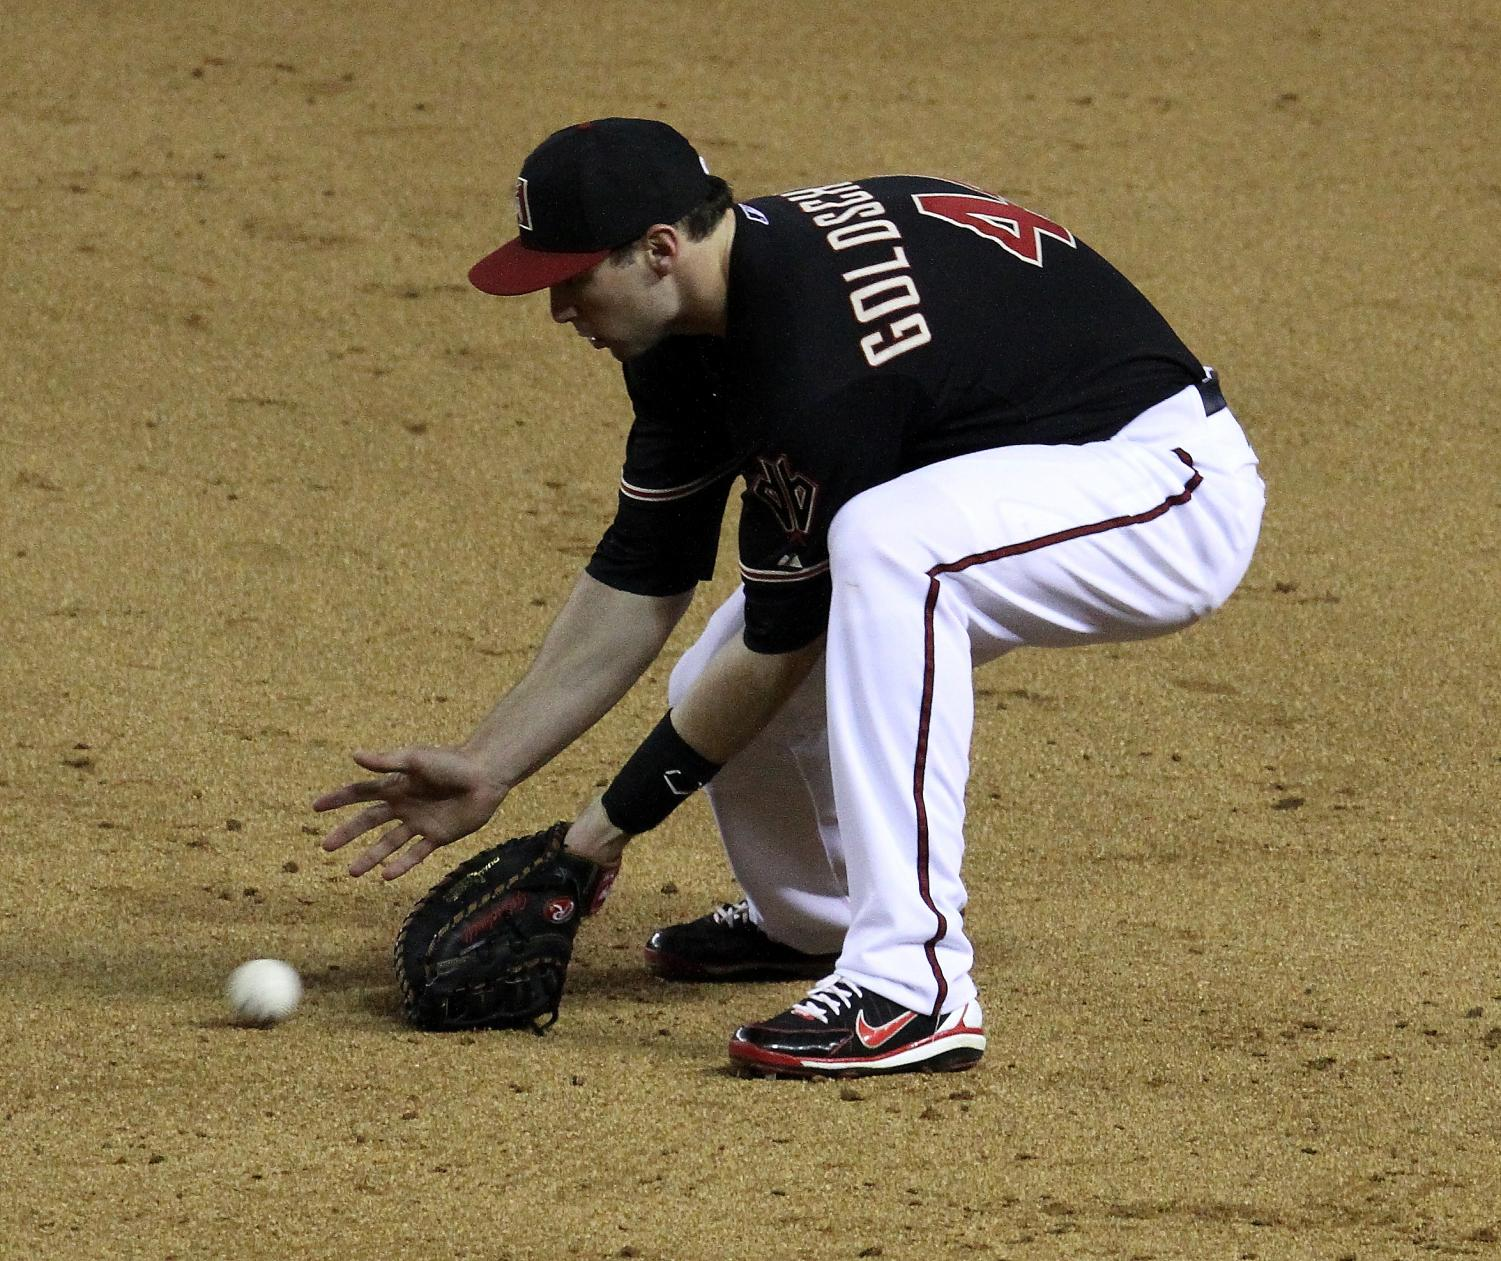 The addition of Paul Goldschmidt makes the Cardinals one of the favorites in the NL Central. (Courtesy of Flickr)